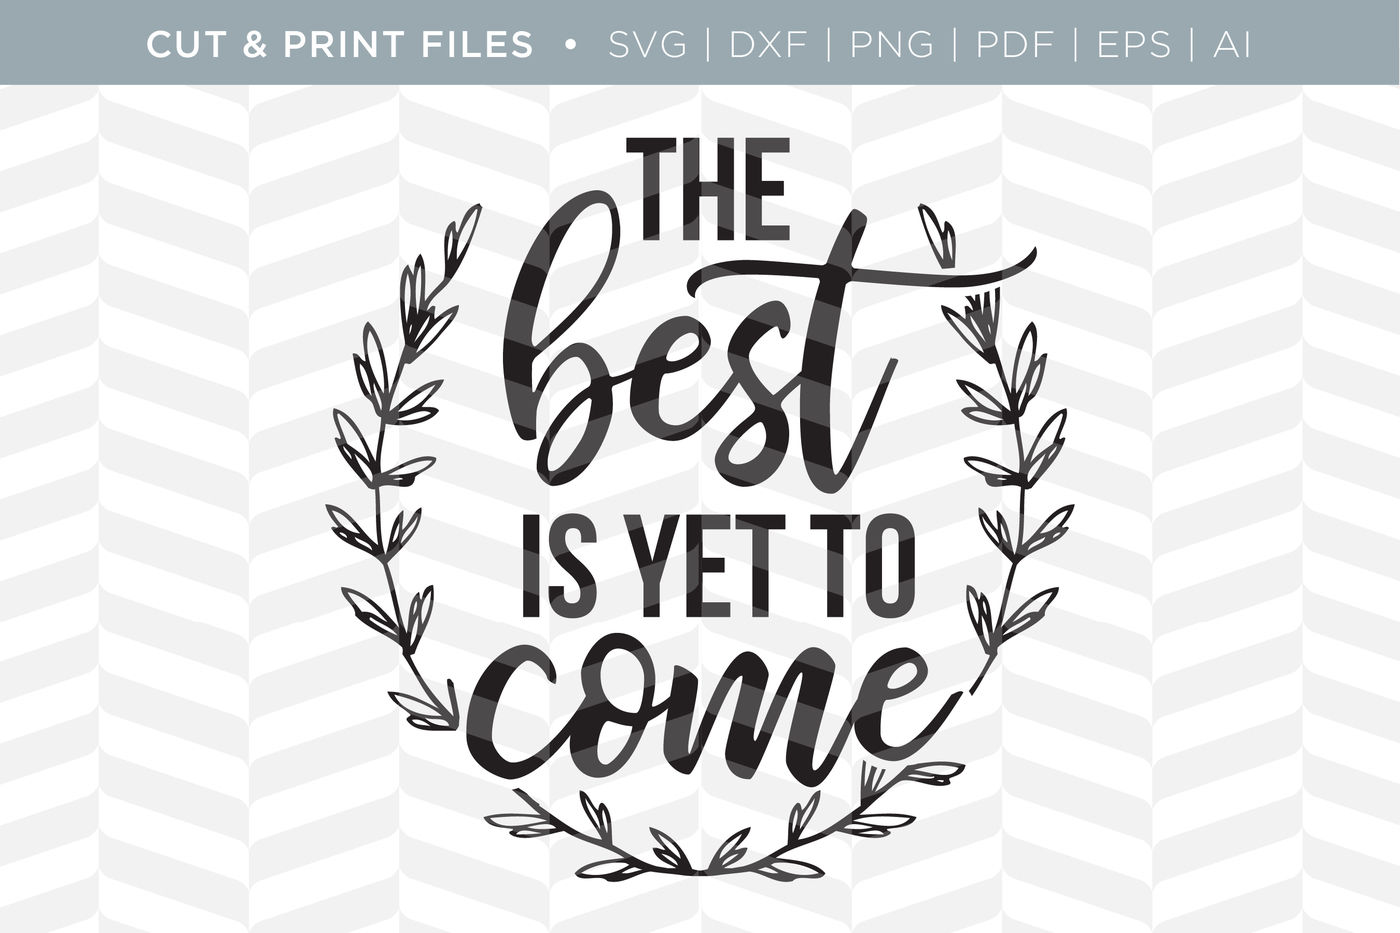 Get Worth The Wait – Dxf/Svg/Png/Pdf Cut & Print Files SVG